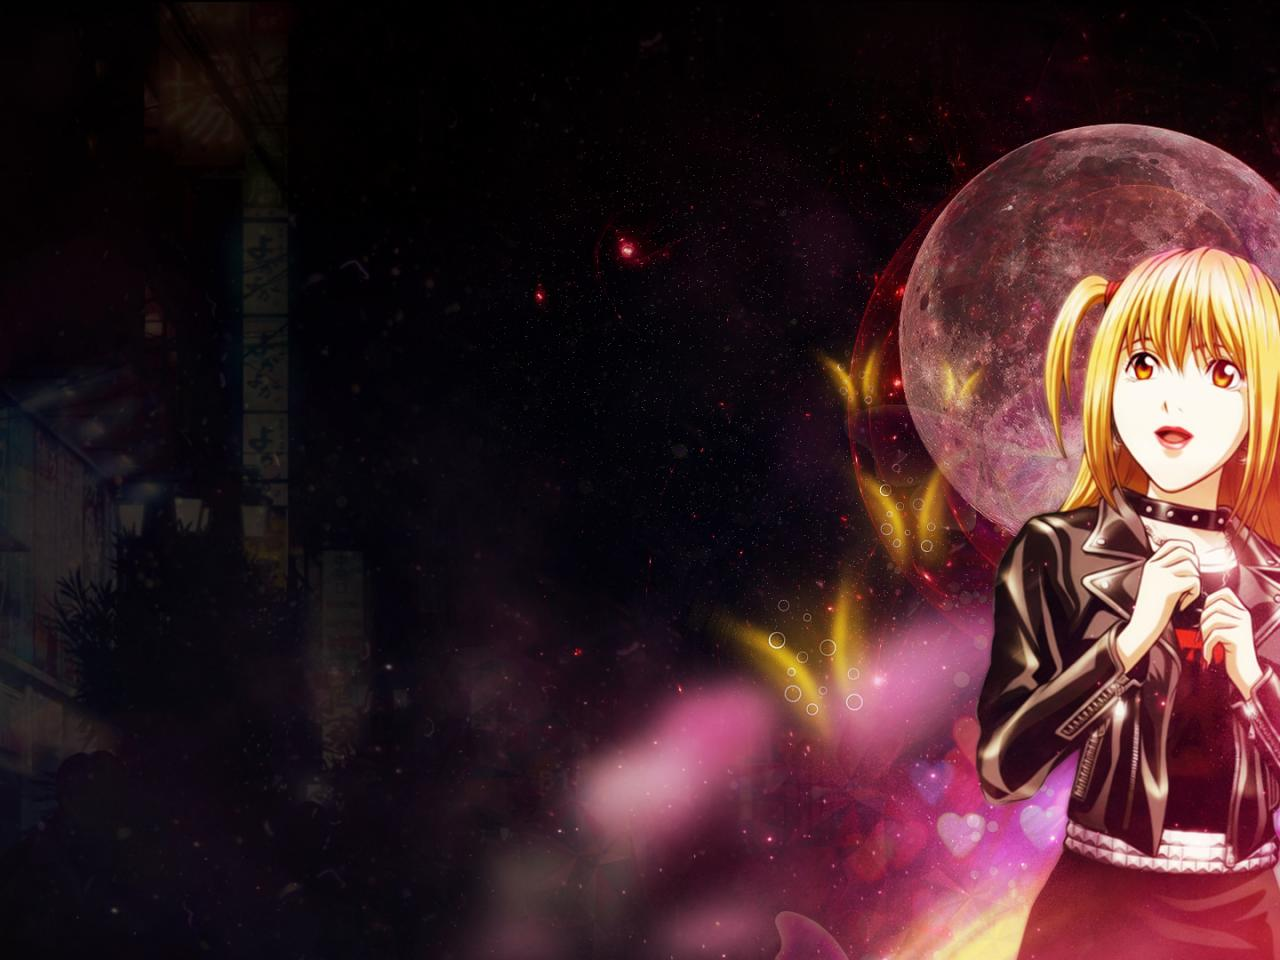 Best anime backgrounds with cartoon girl images misa - Best anime images website ...